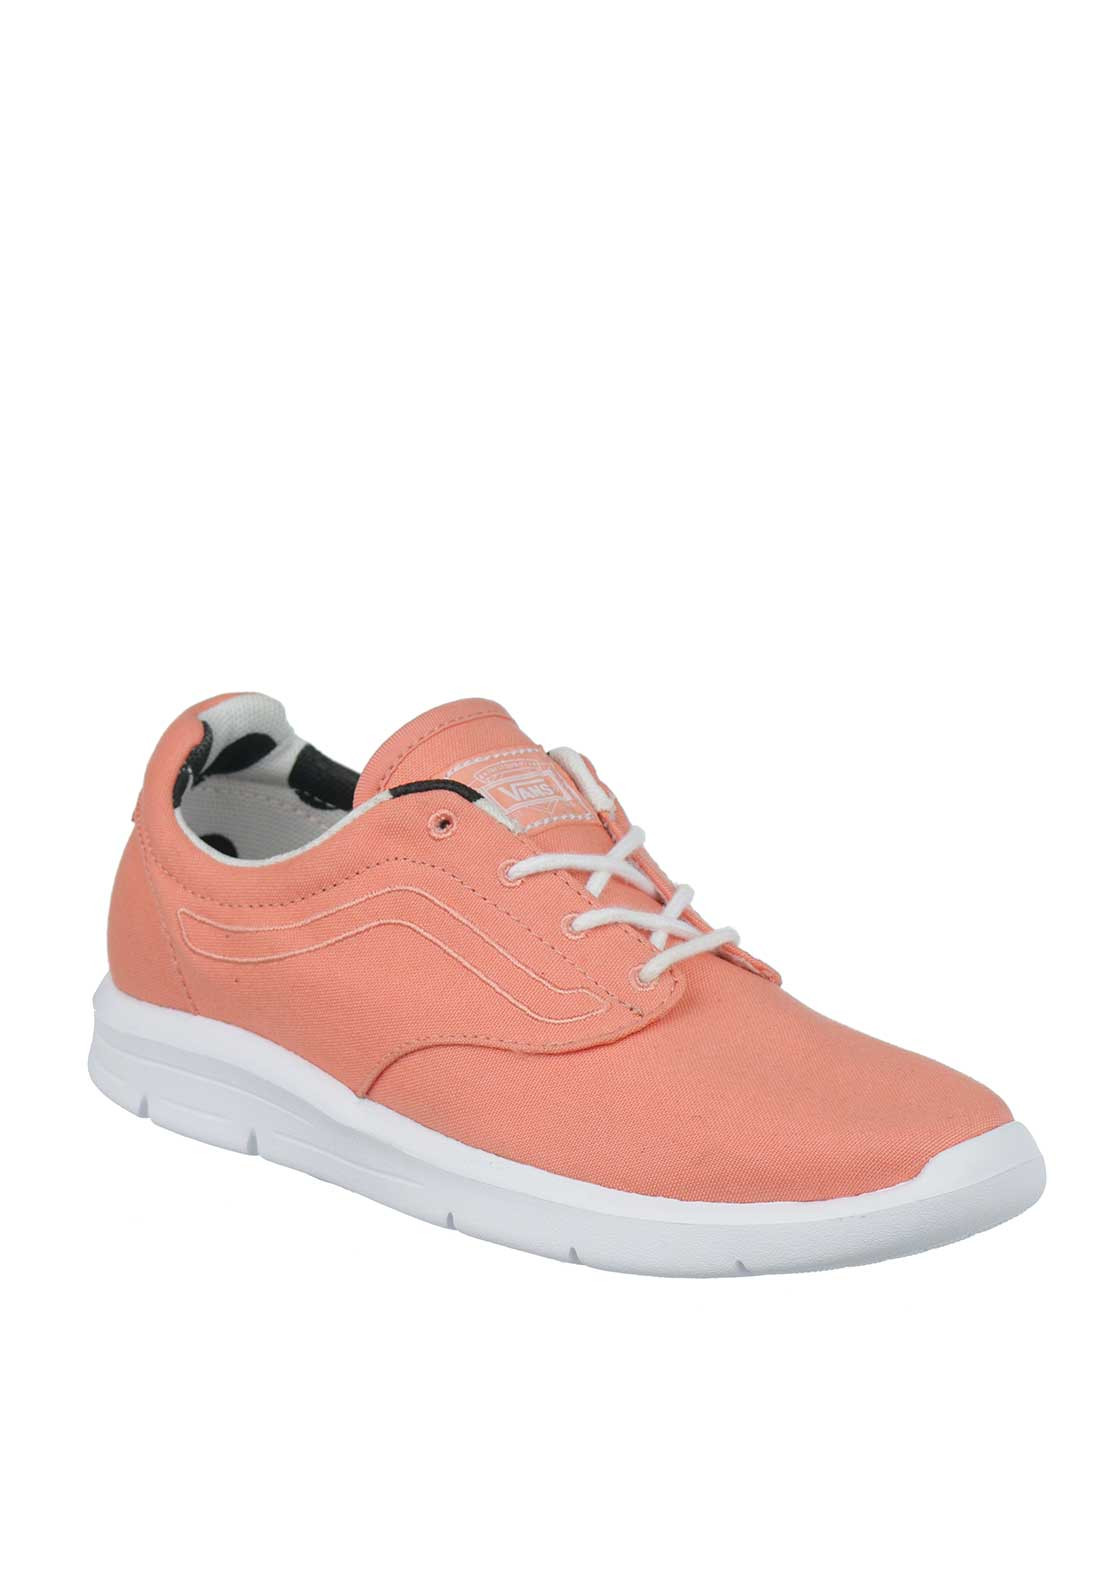 Vans Girls Ultracush Trainers, Peach